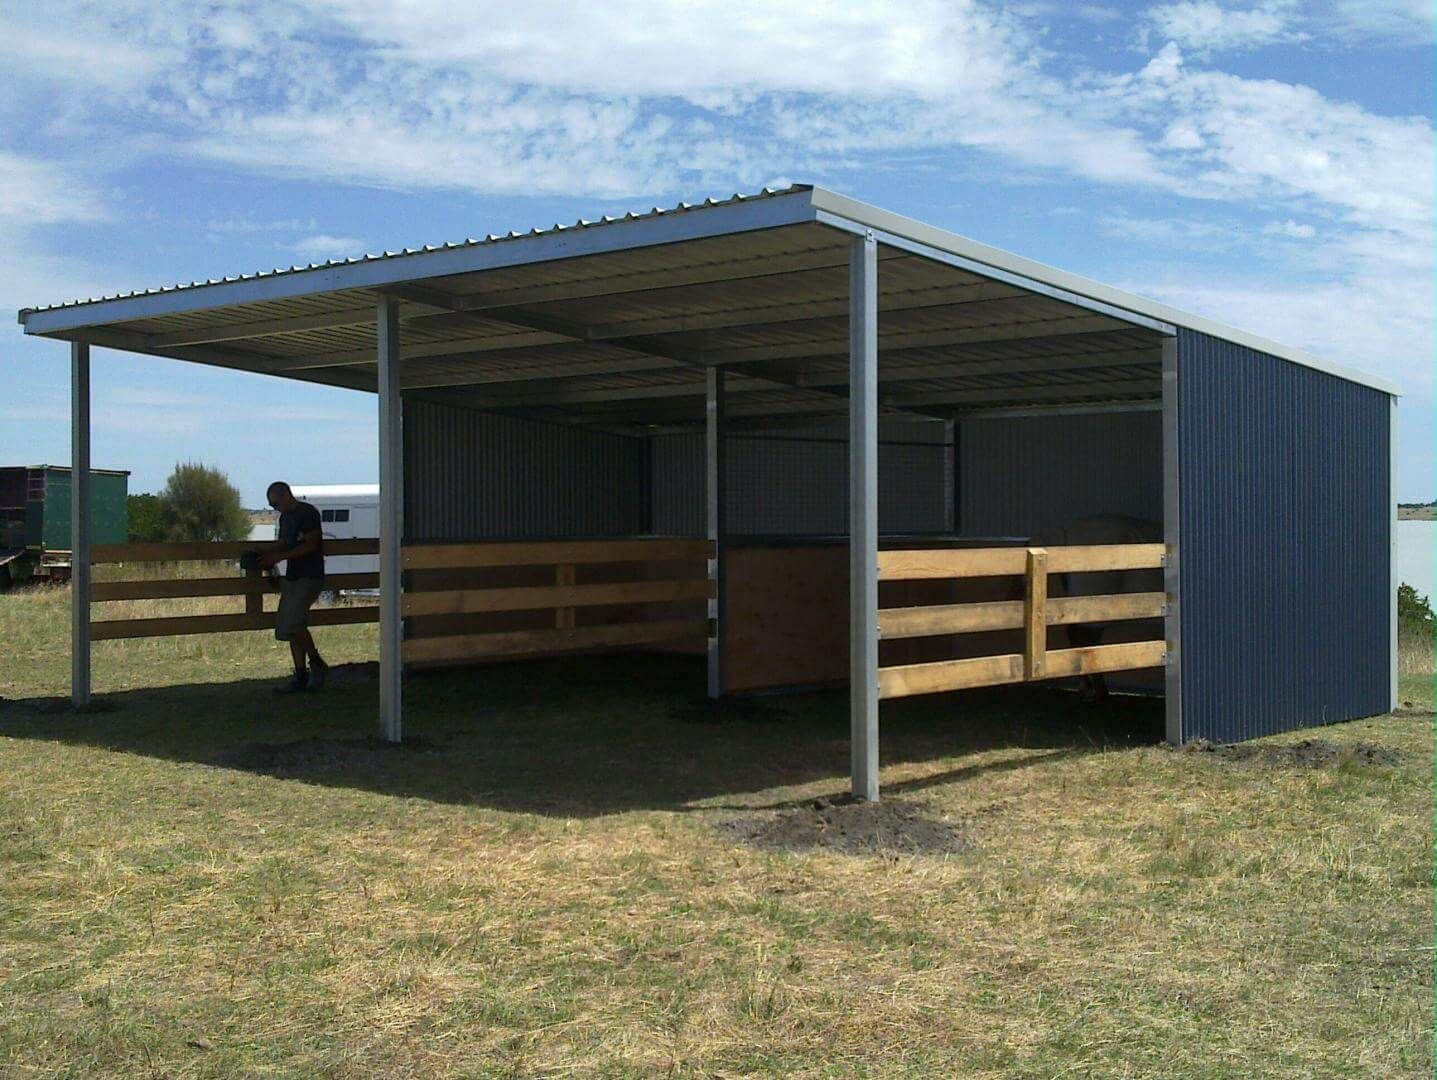 Pin By Kualani Kennedy On Shed Small Horse Barns Horse Shelter Simple Horse Barns